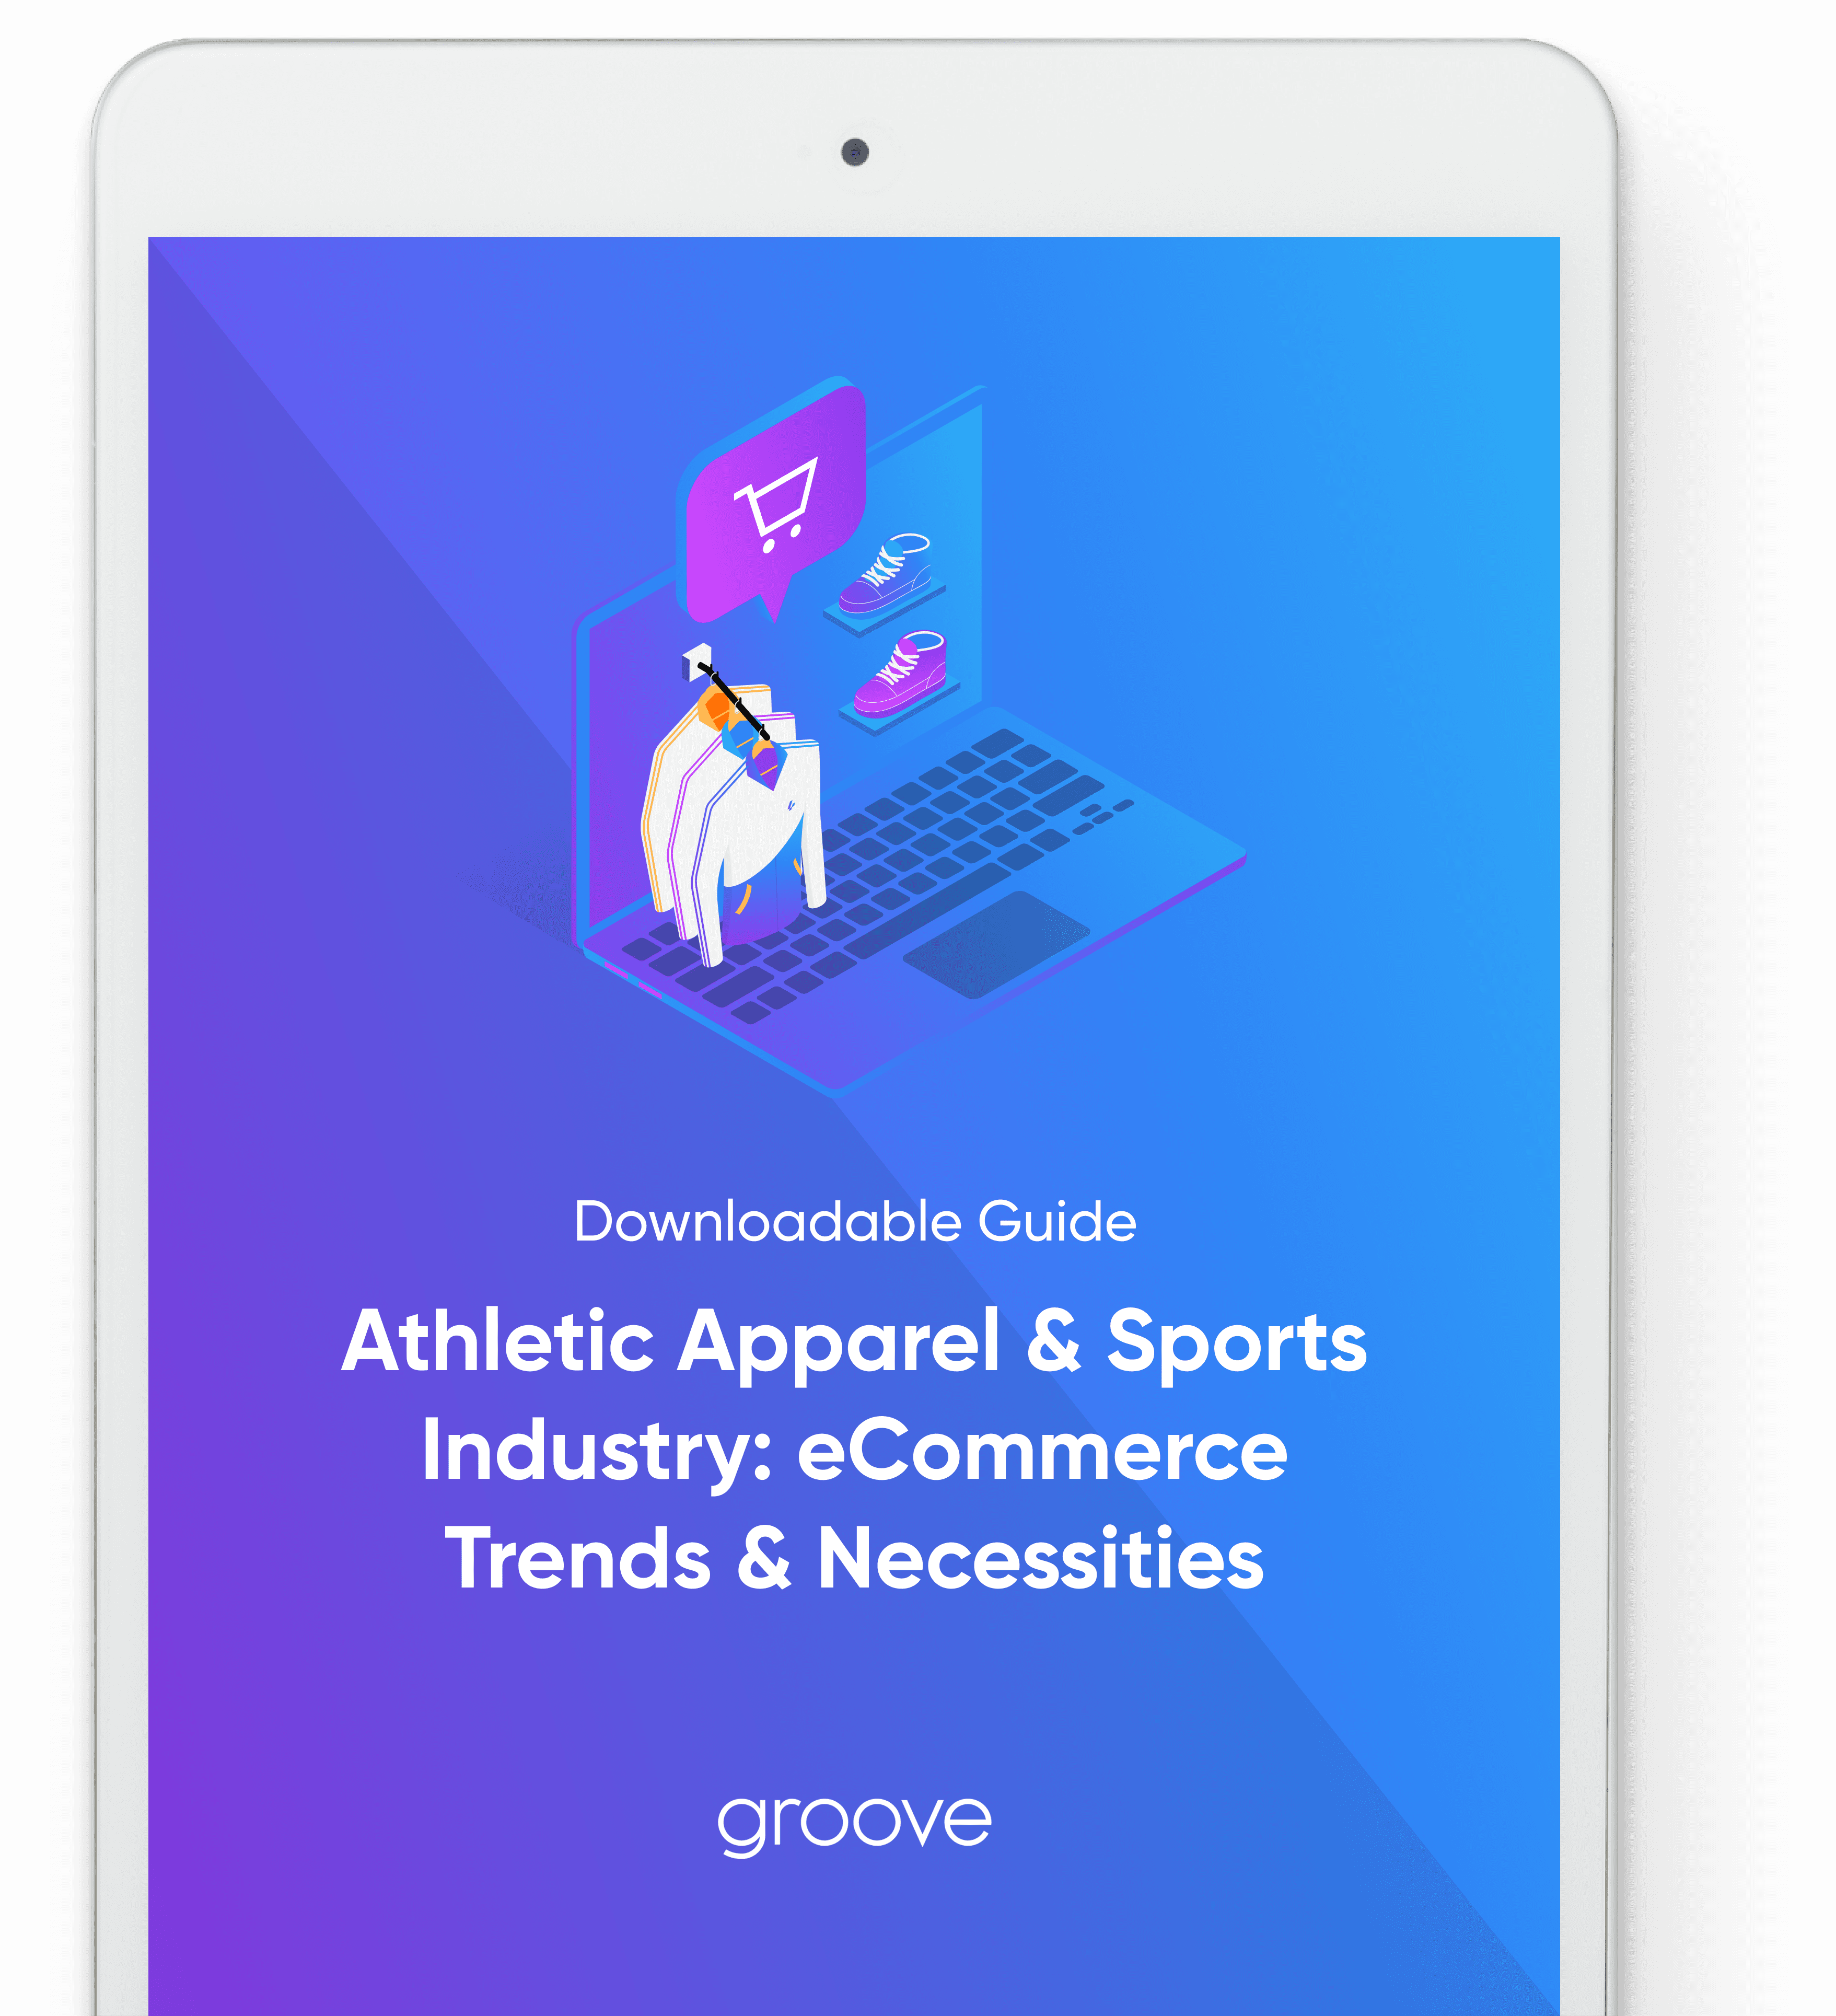 Athletic Apparel & Sports Industry: eCommerce Trends & Necessities